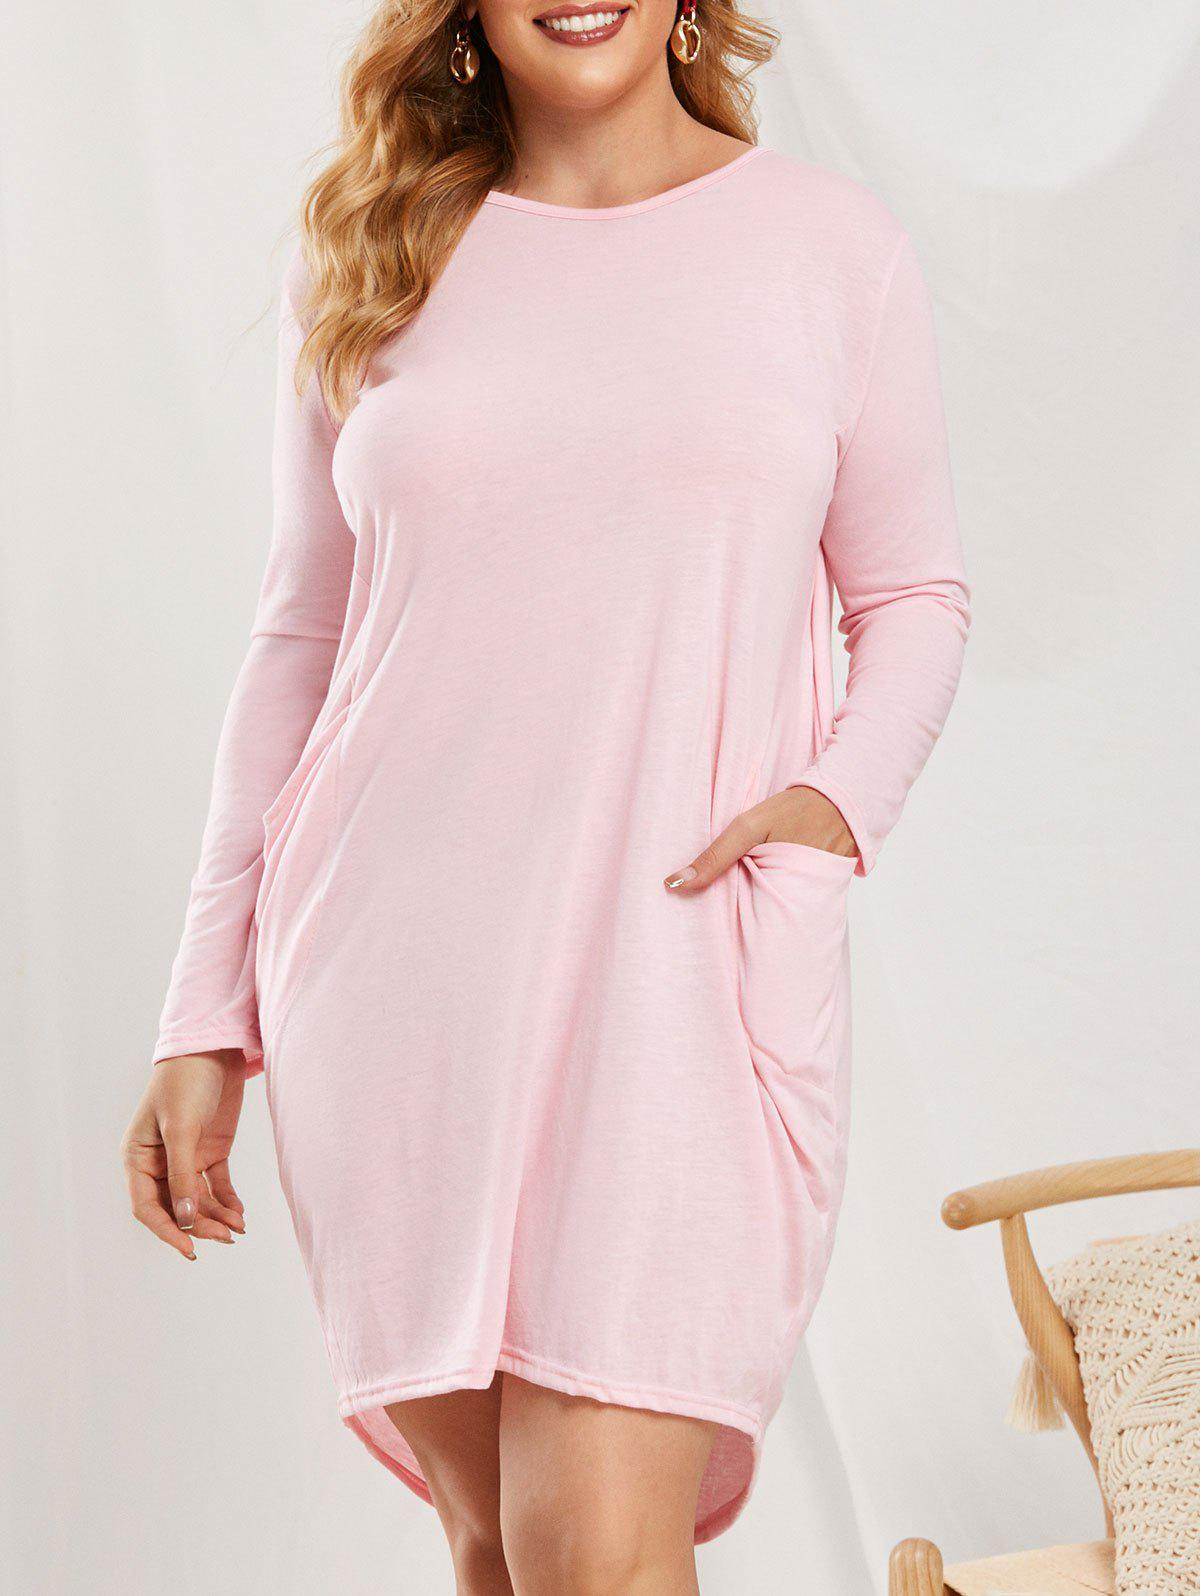 Robe Bouffante Grande Taille avec Poches Rose clair 4XL